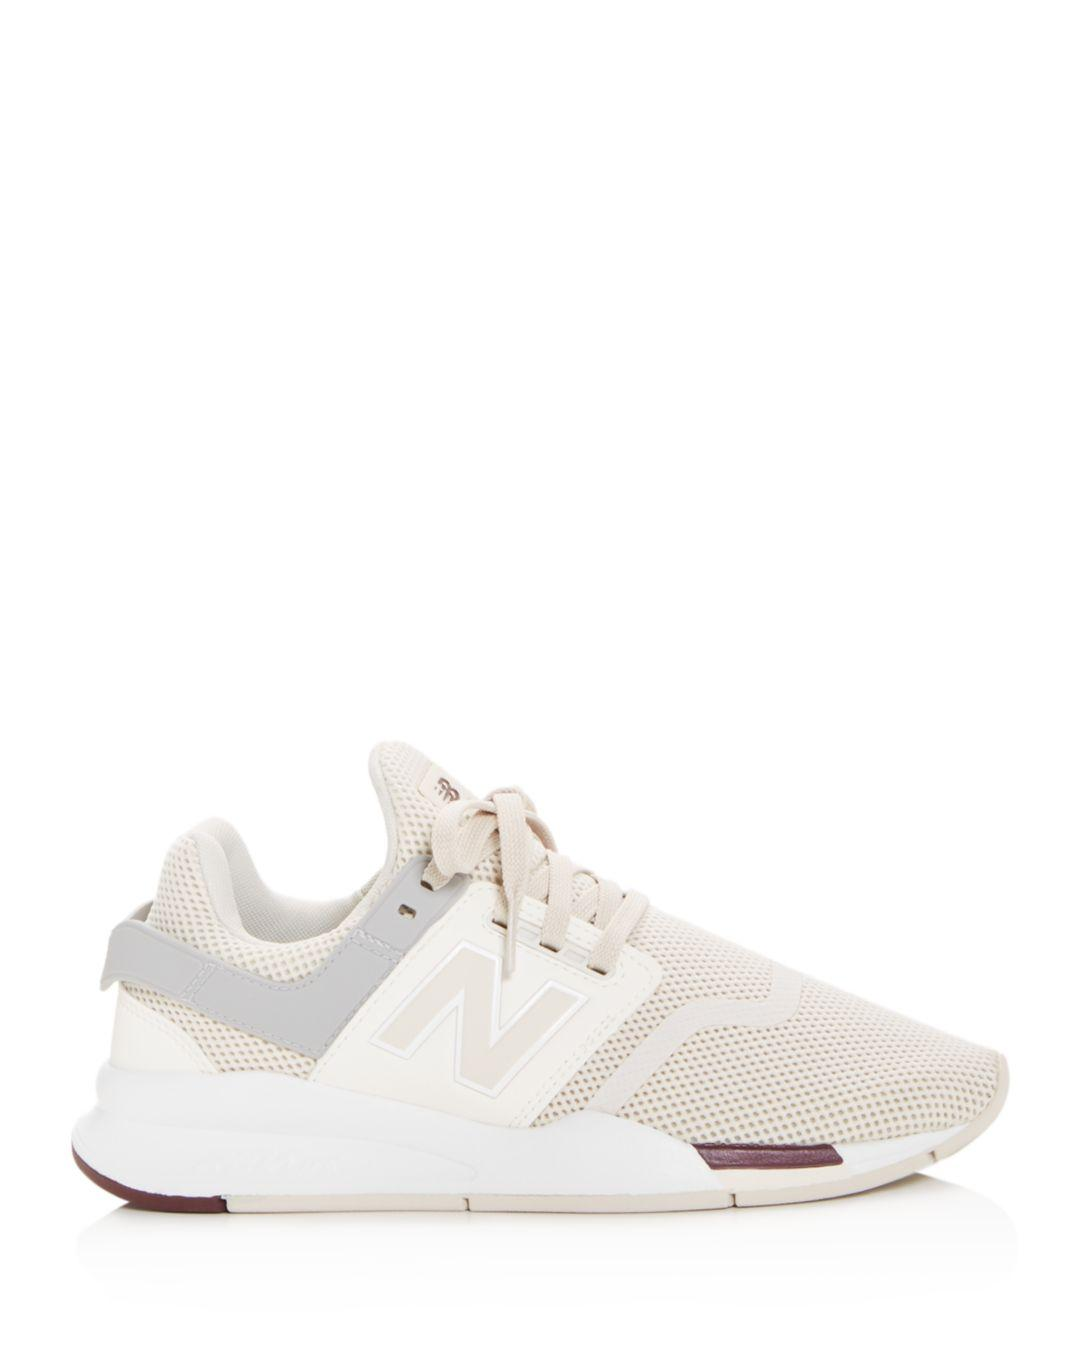 separation shoes 918bf 17f6a Lyst - New Balance Women s 574 Low-top Sneakers in White